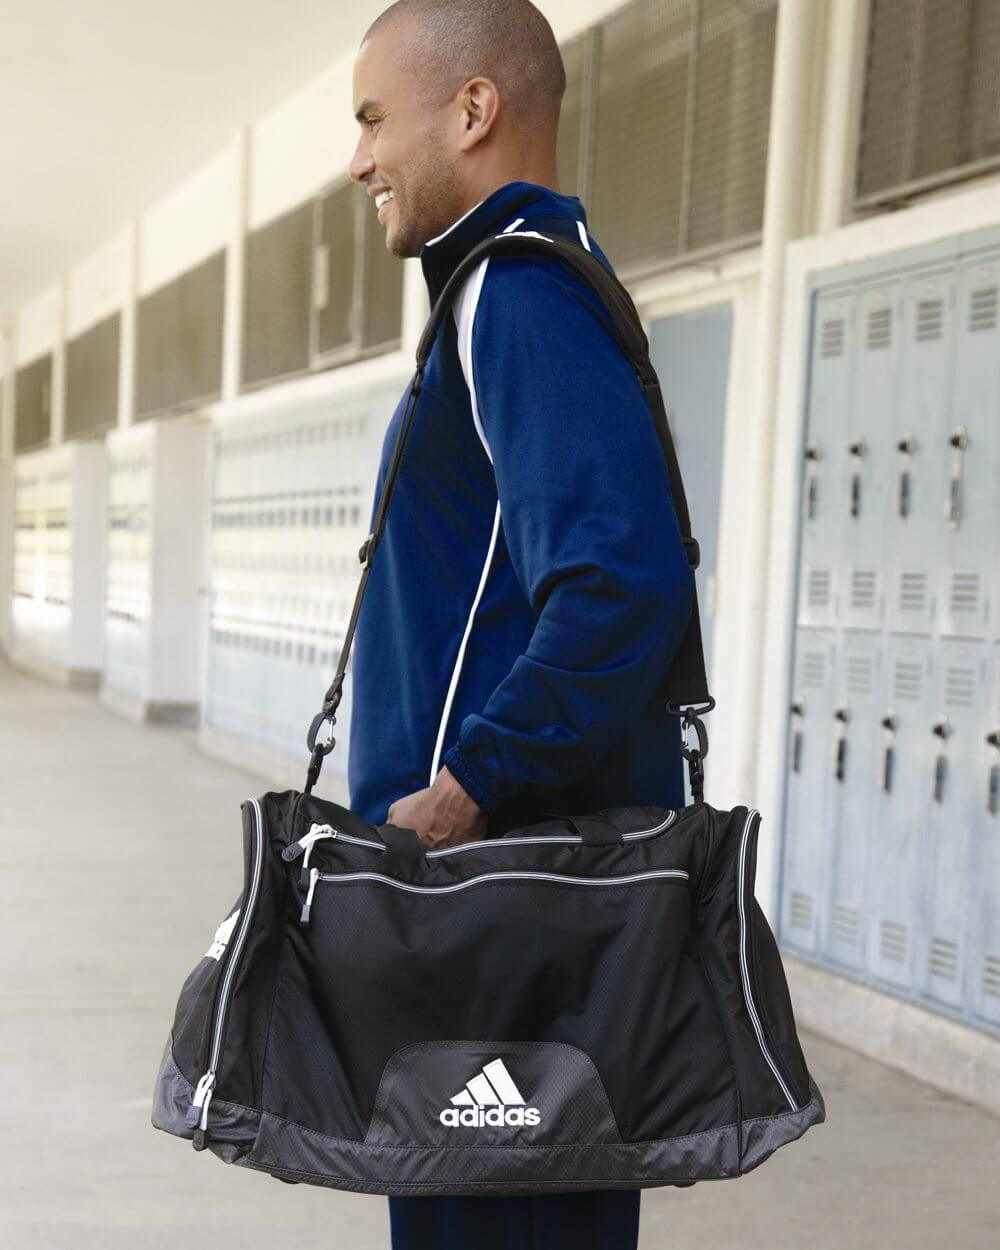 860aa916 Adidas Gym Bag Large